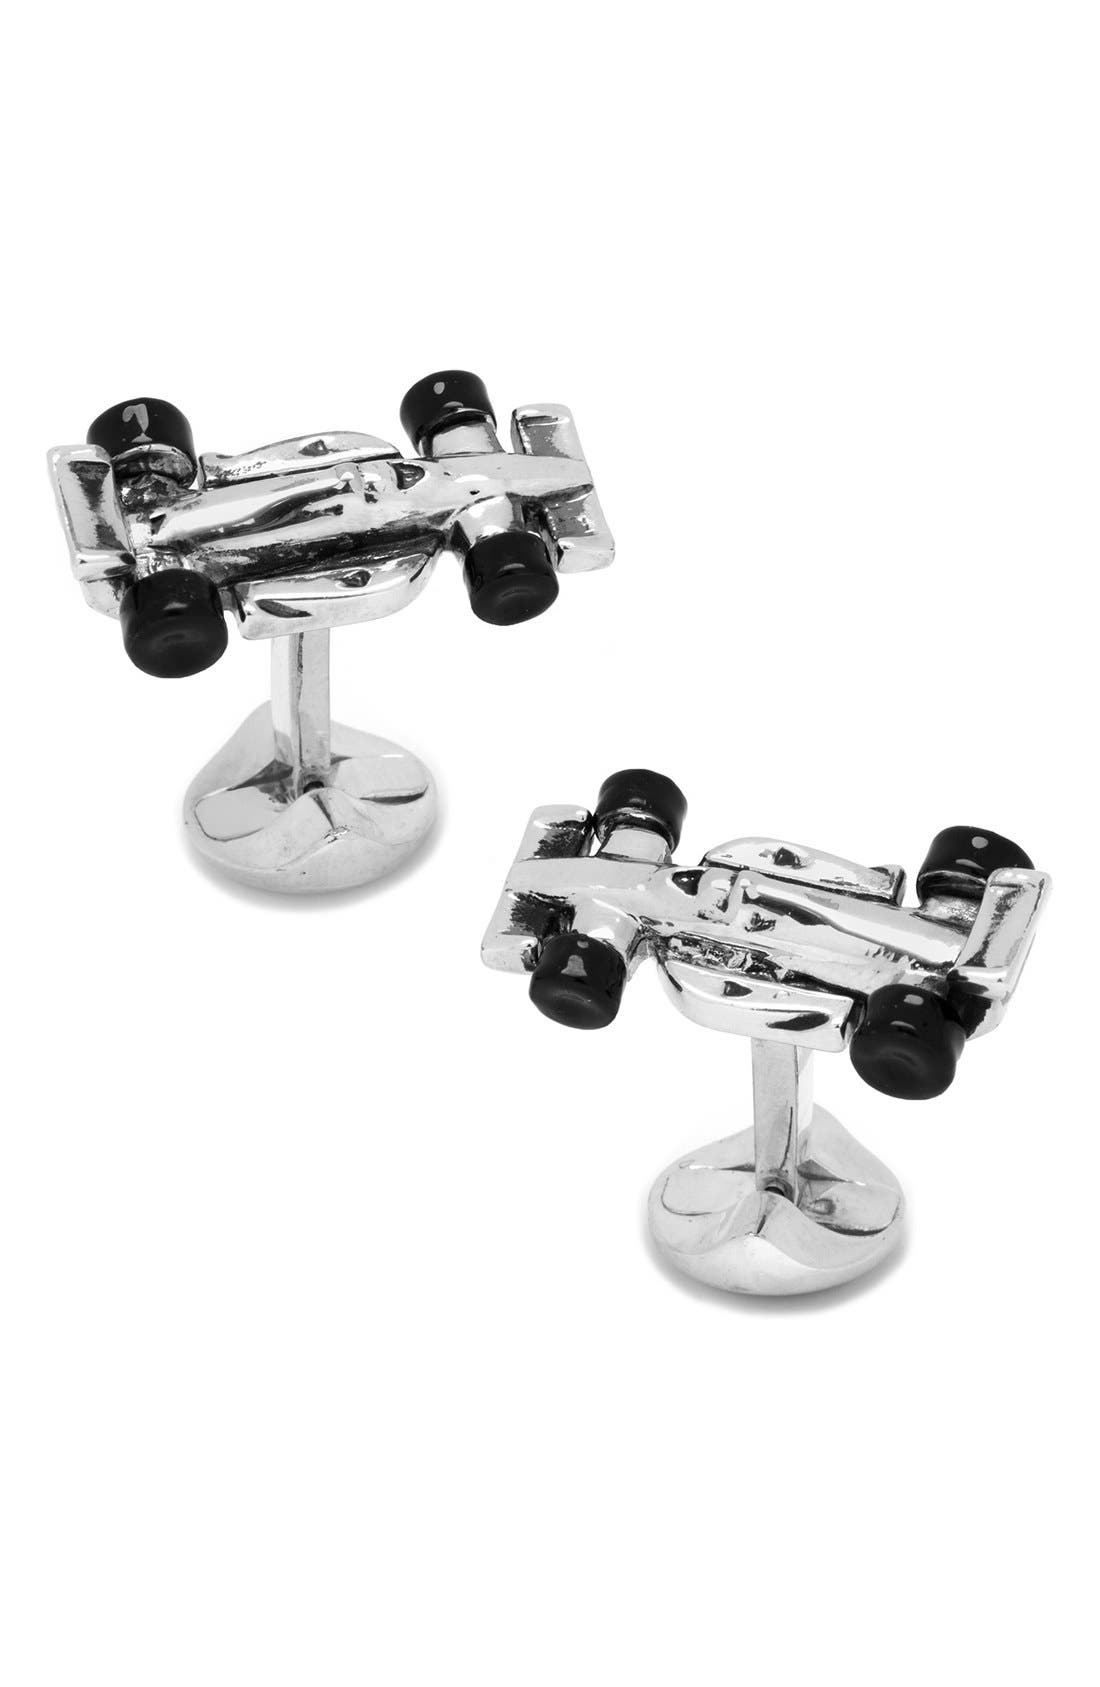 Alternate Image 1 Selected - Ox and Bull Trading Co. Racecar Cuff Links